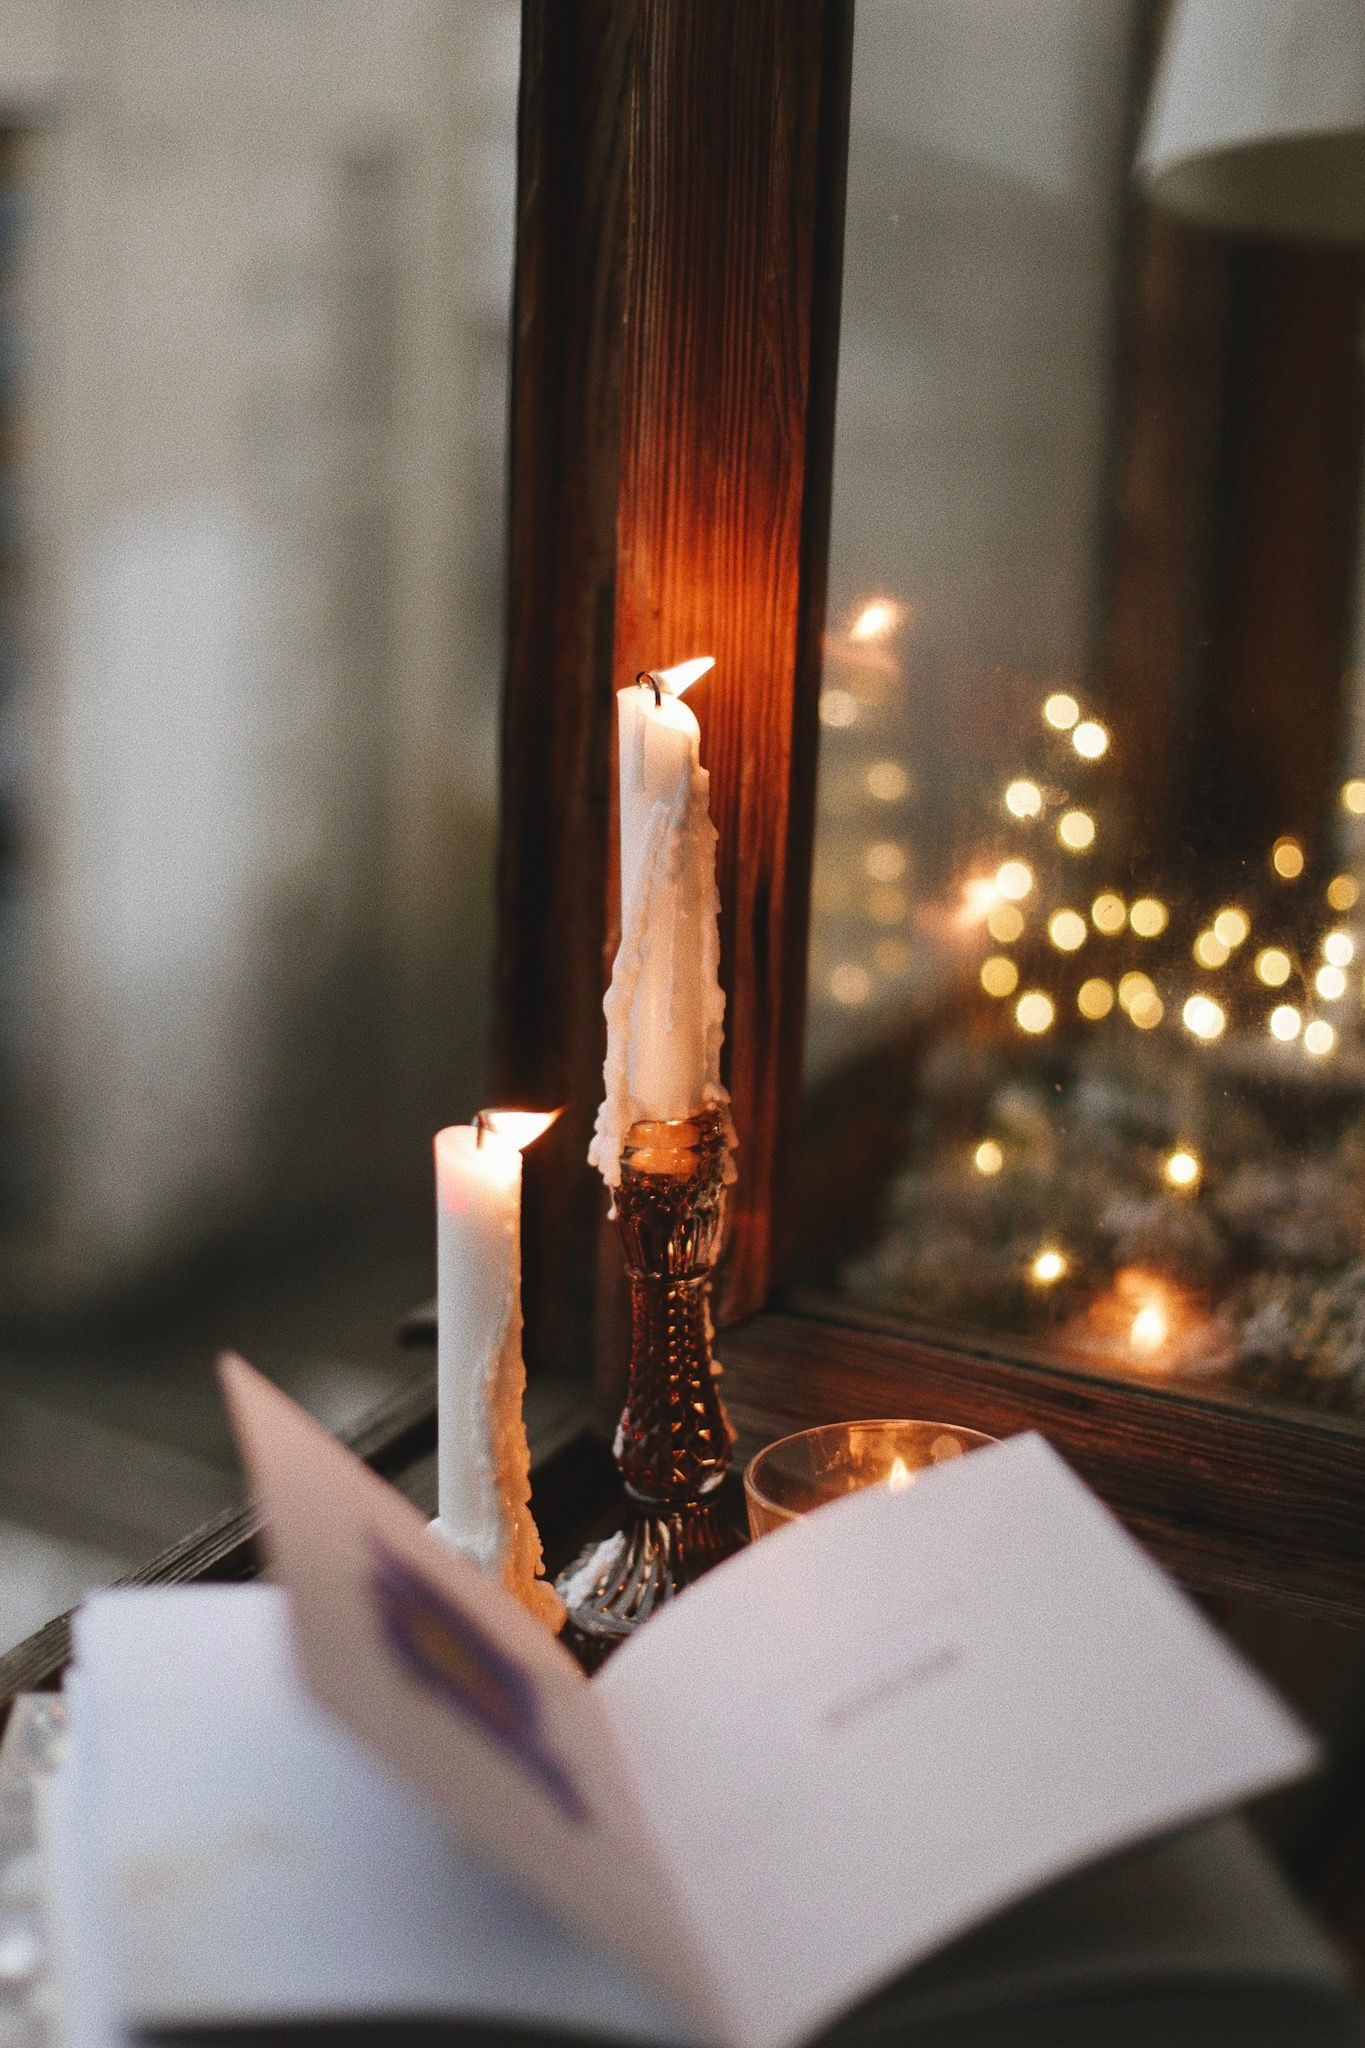 Winter Hygge Candles Candle Aesthetic Christmas Reading Winter Candle